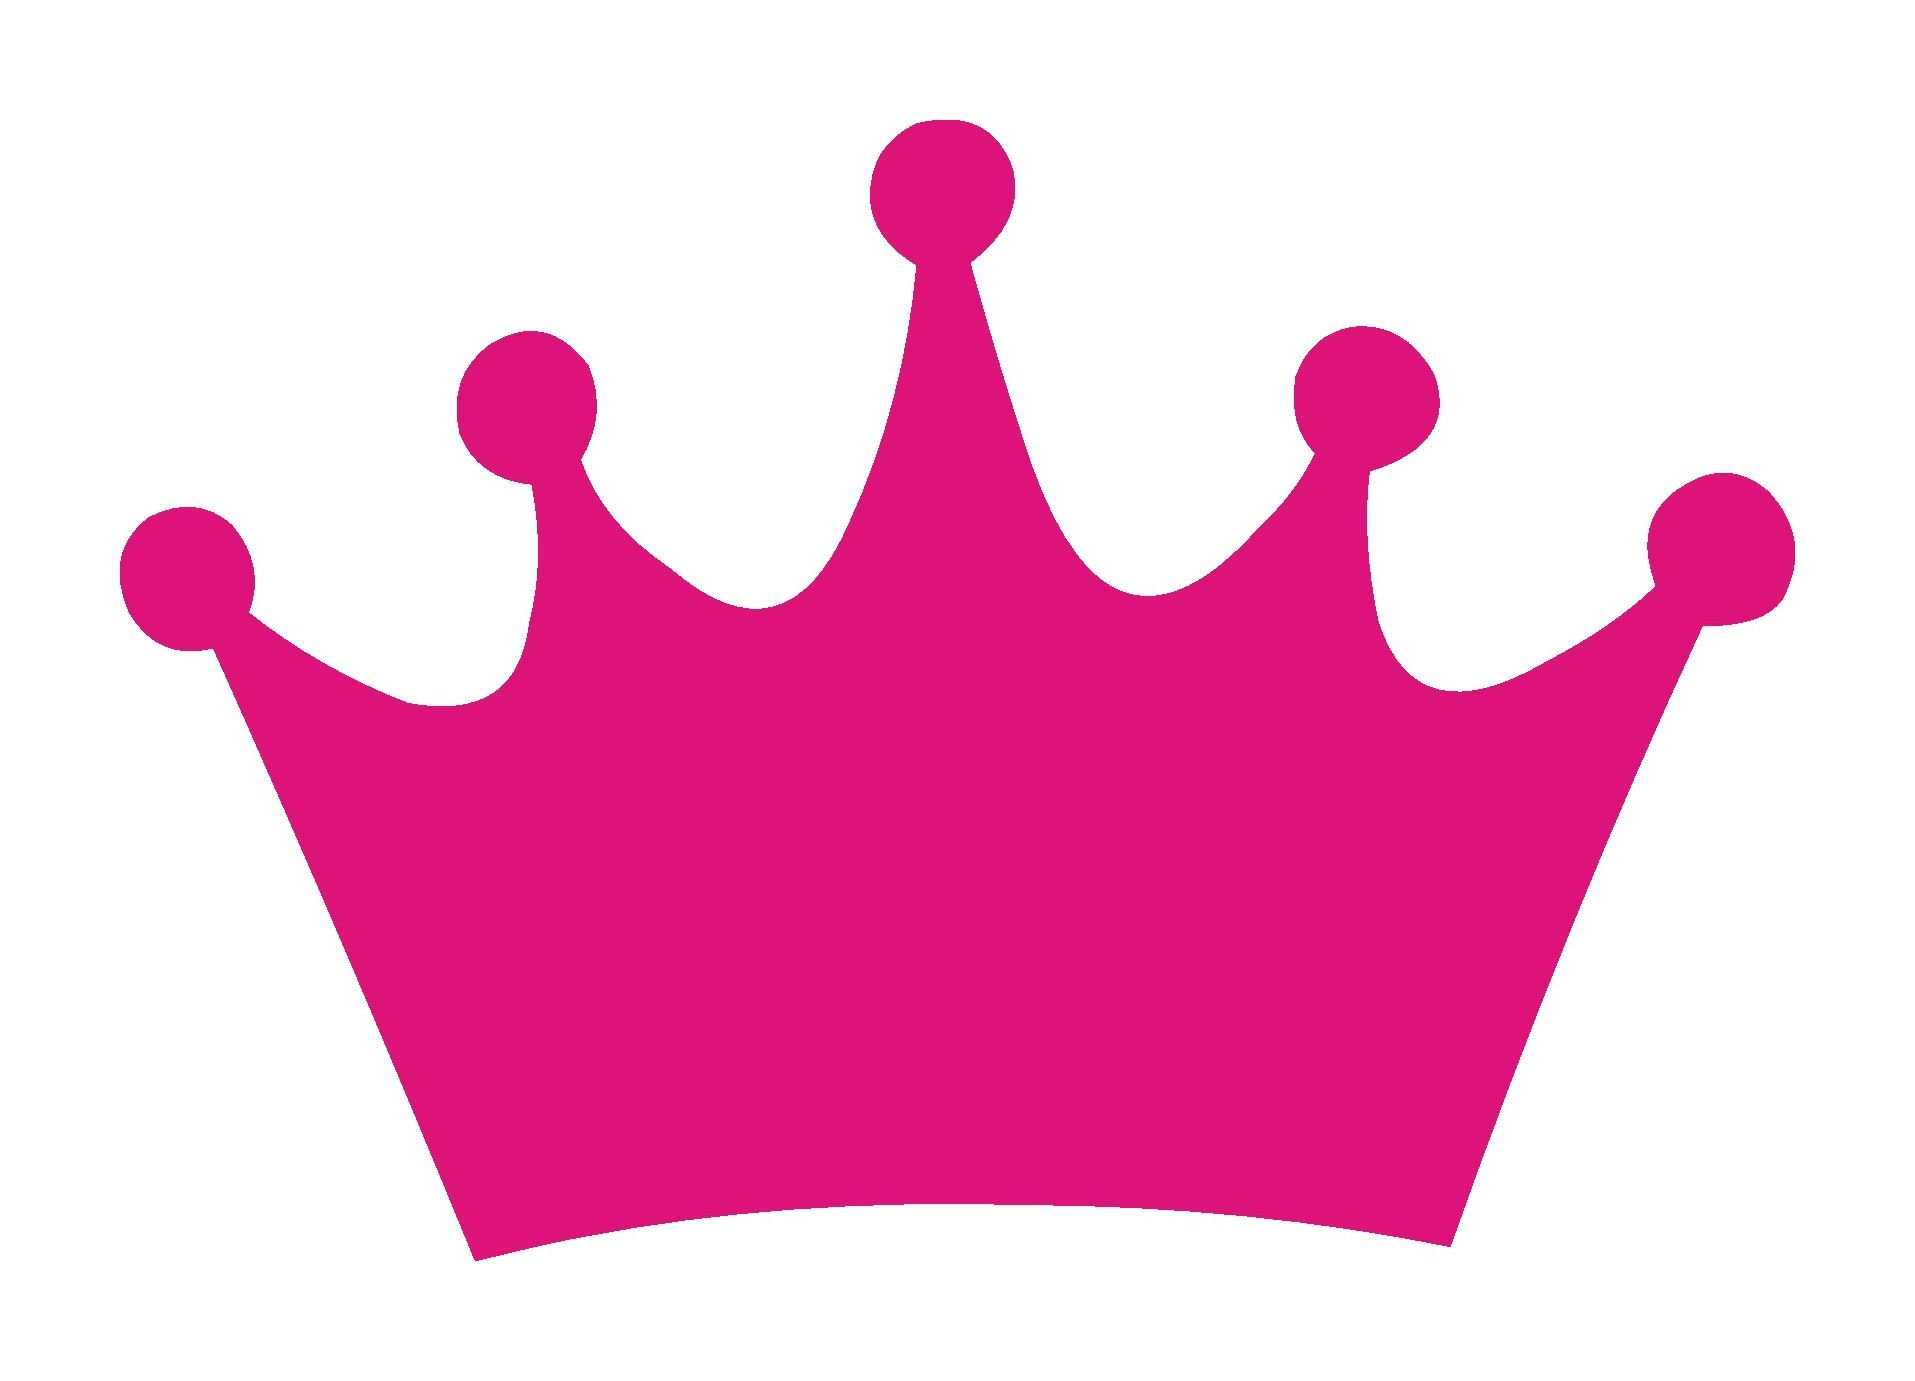 this is best princess crown clipart 15777 princess crown png rh pinterest com prince crown clip art free prince crown clip art free